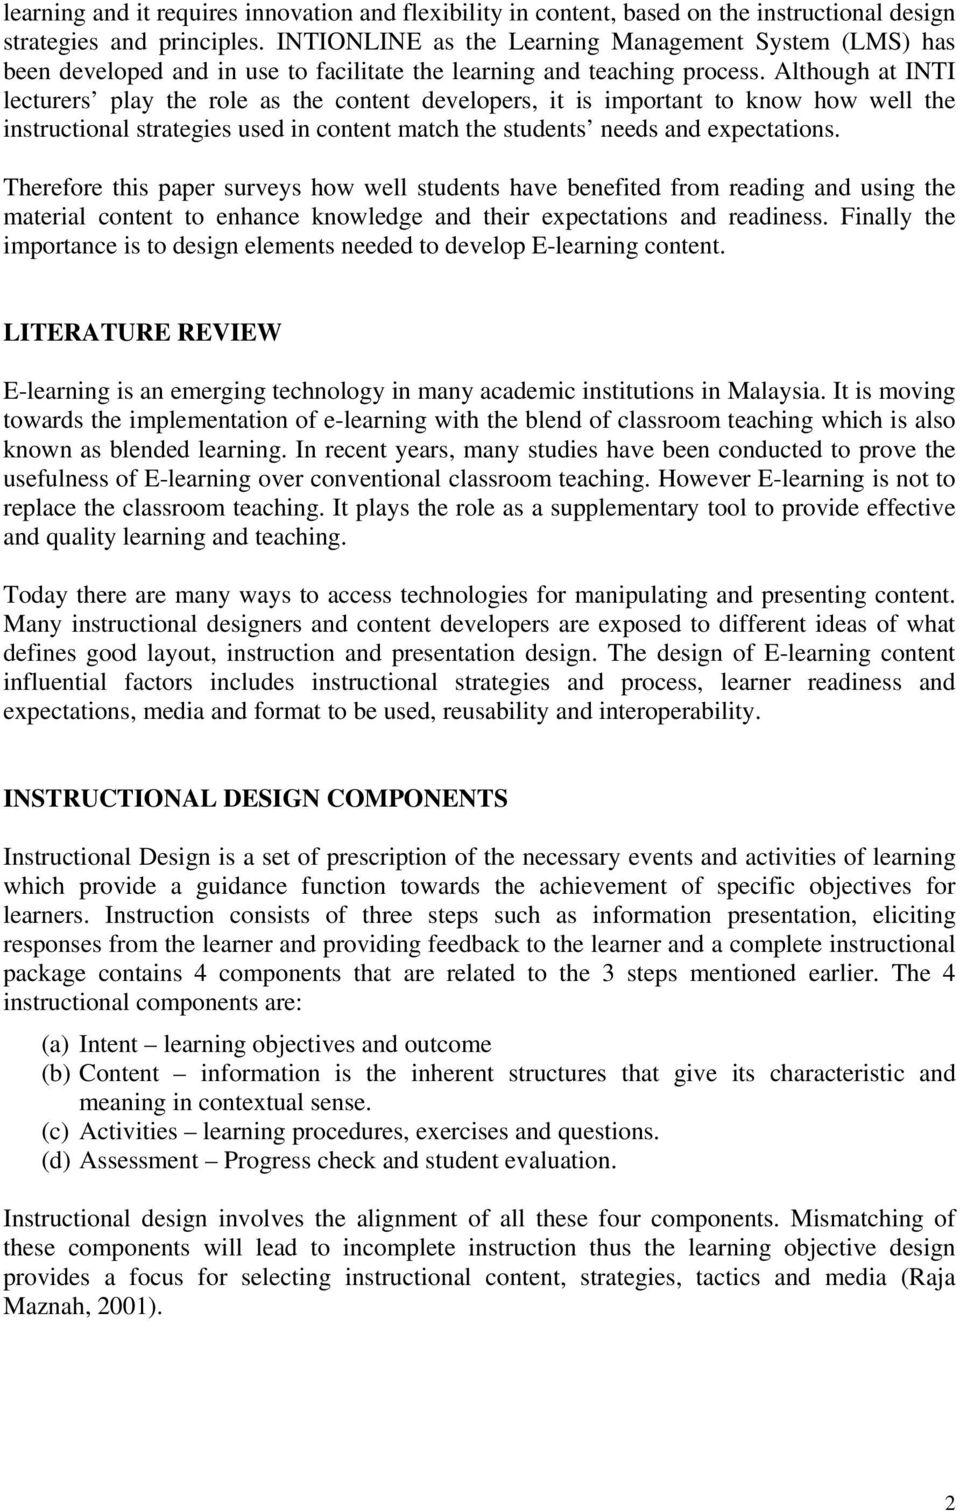 Student Centered Instructional Design For E Learning Content Learning Management System Lms Pdf Free Download